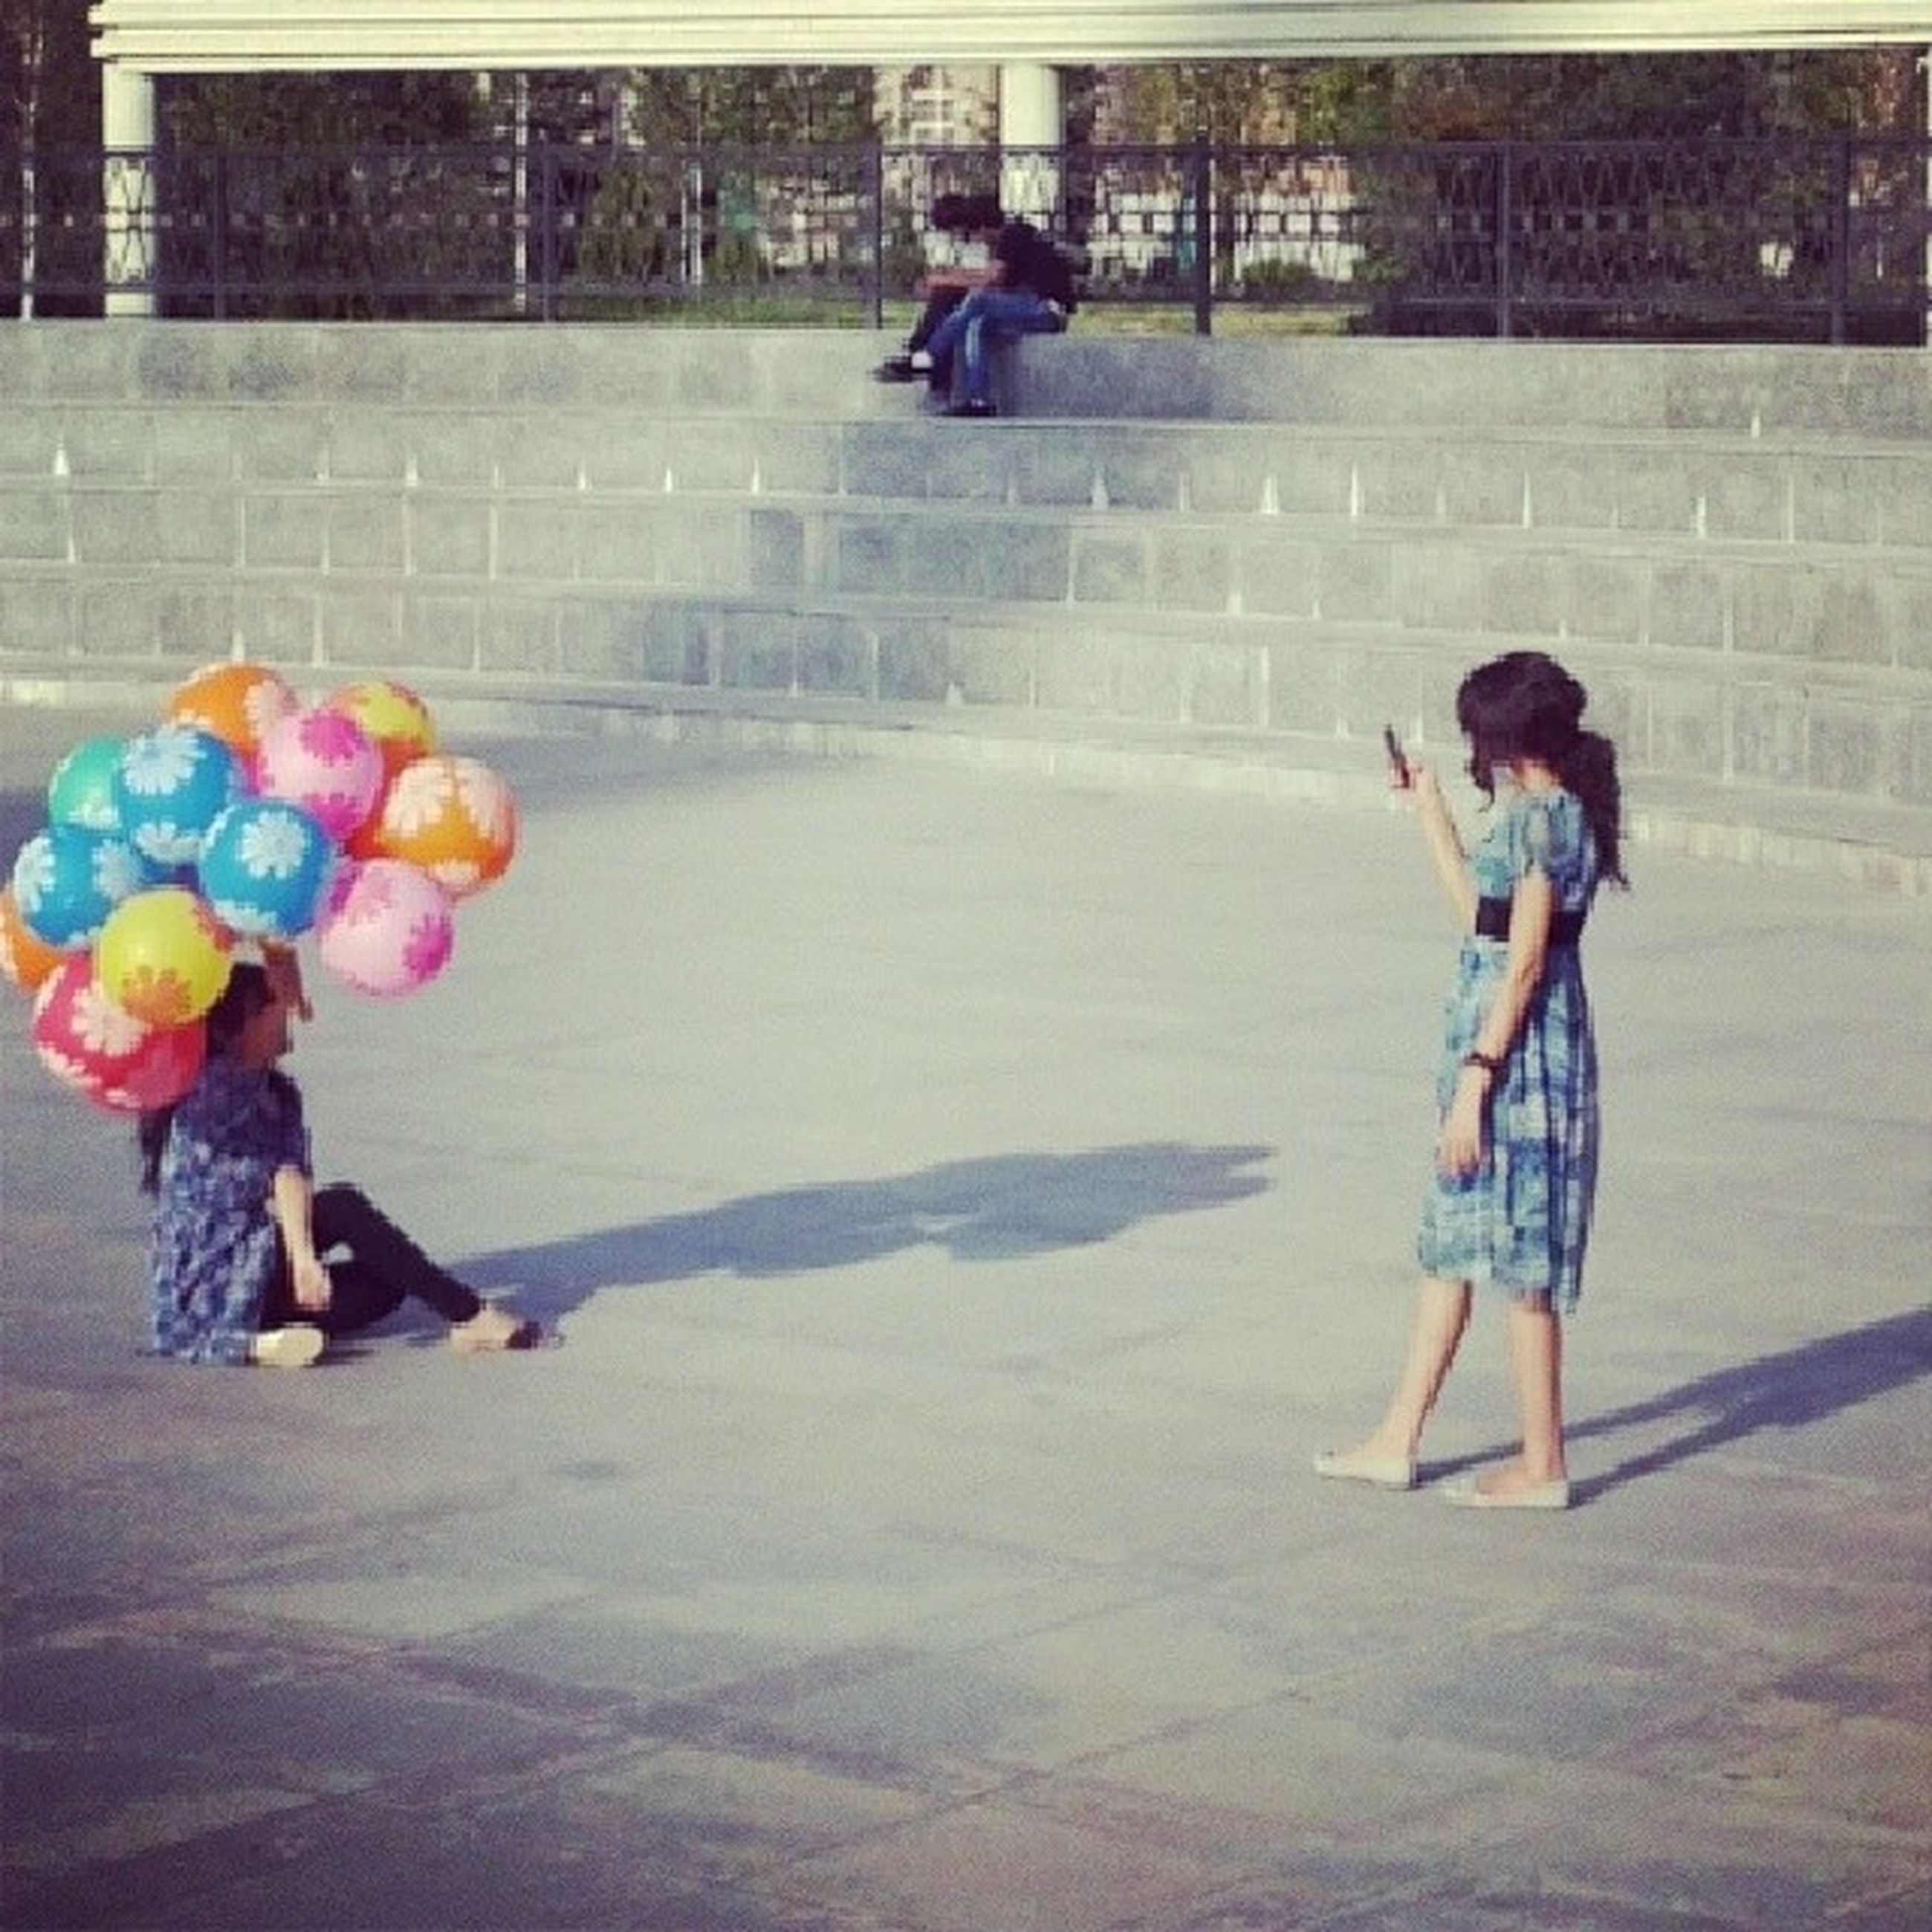 full length, lifestyles, childhood, casual clothing, leisure activity, boys, person, elementary age, girls, happiness, fun, playing, enjoyment, front view, innocence, togetherness, built structure